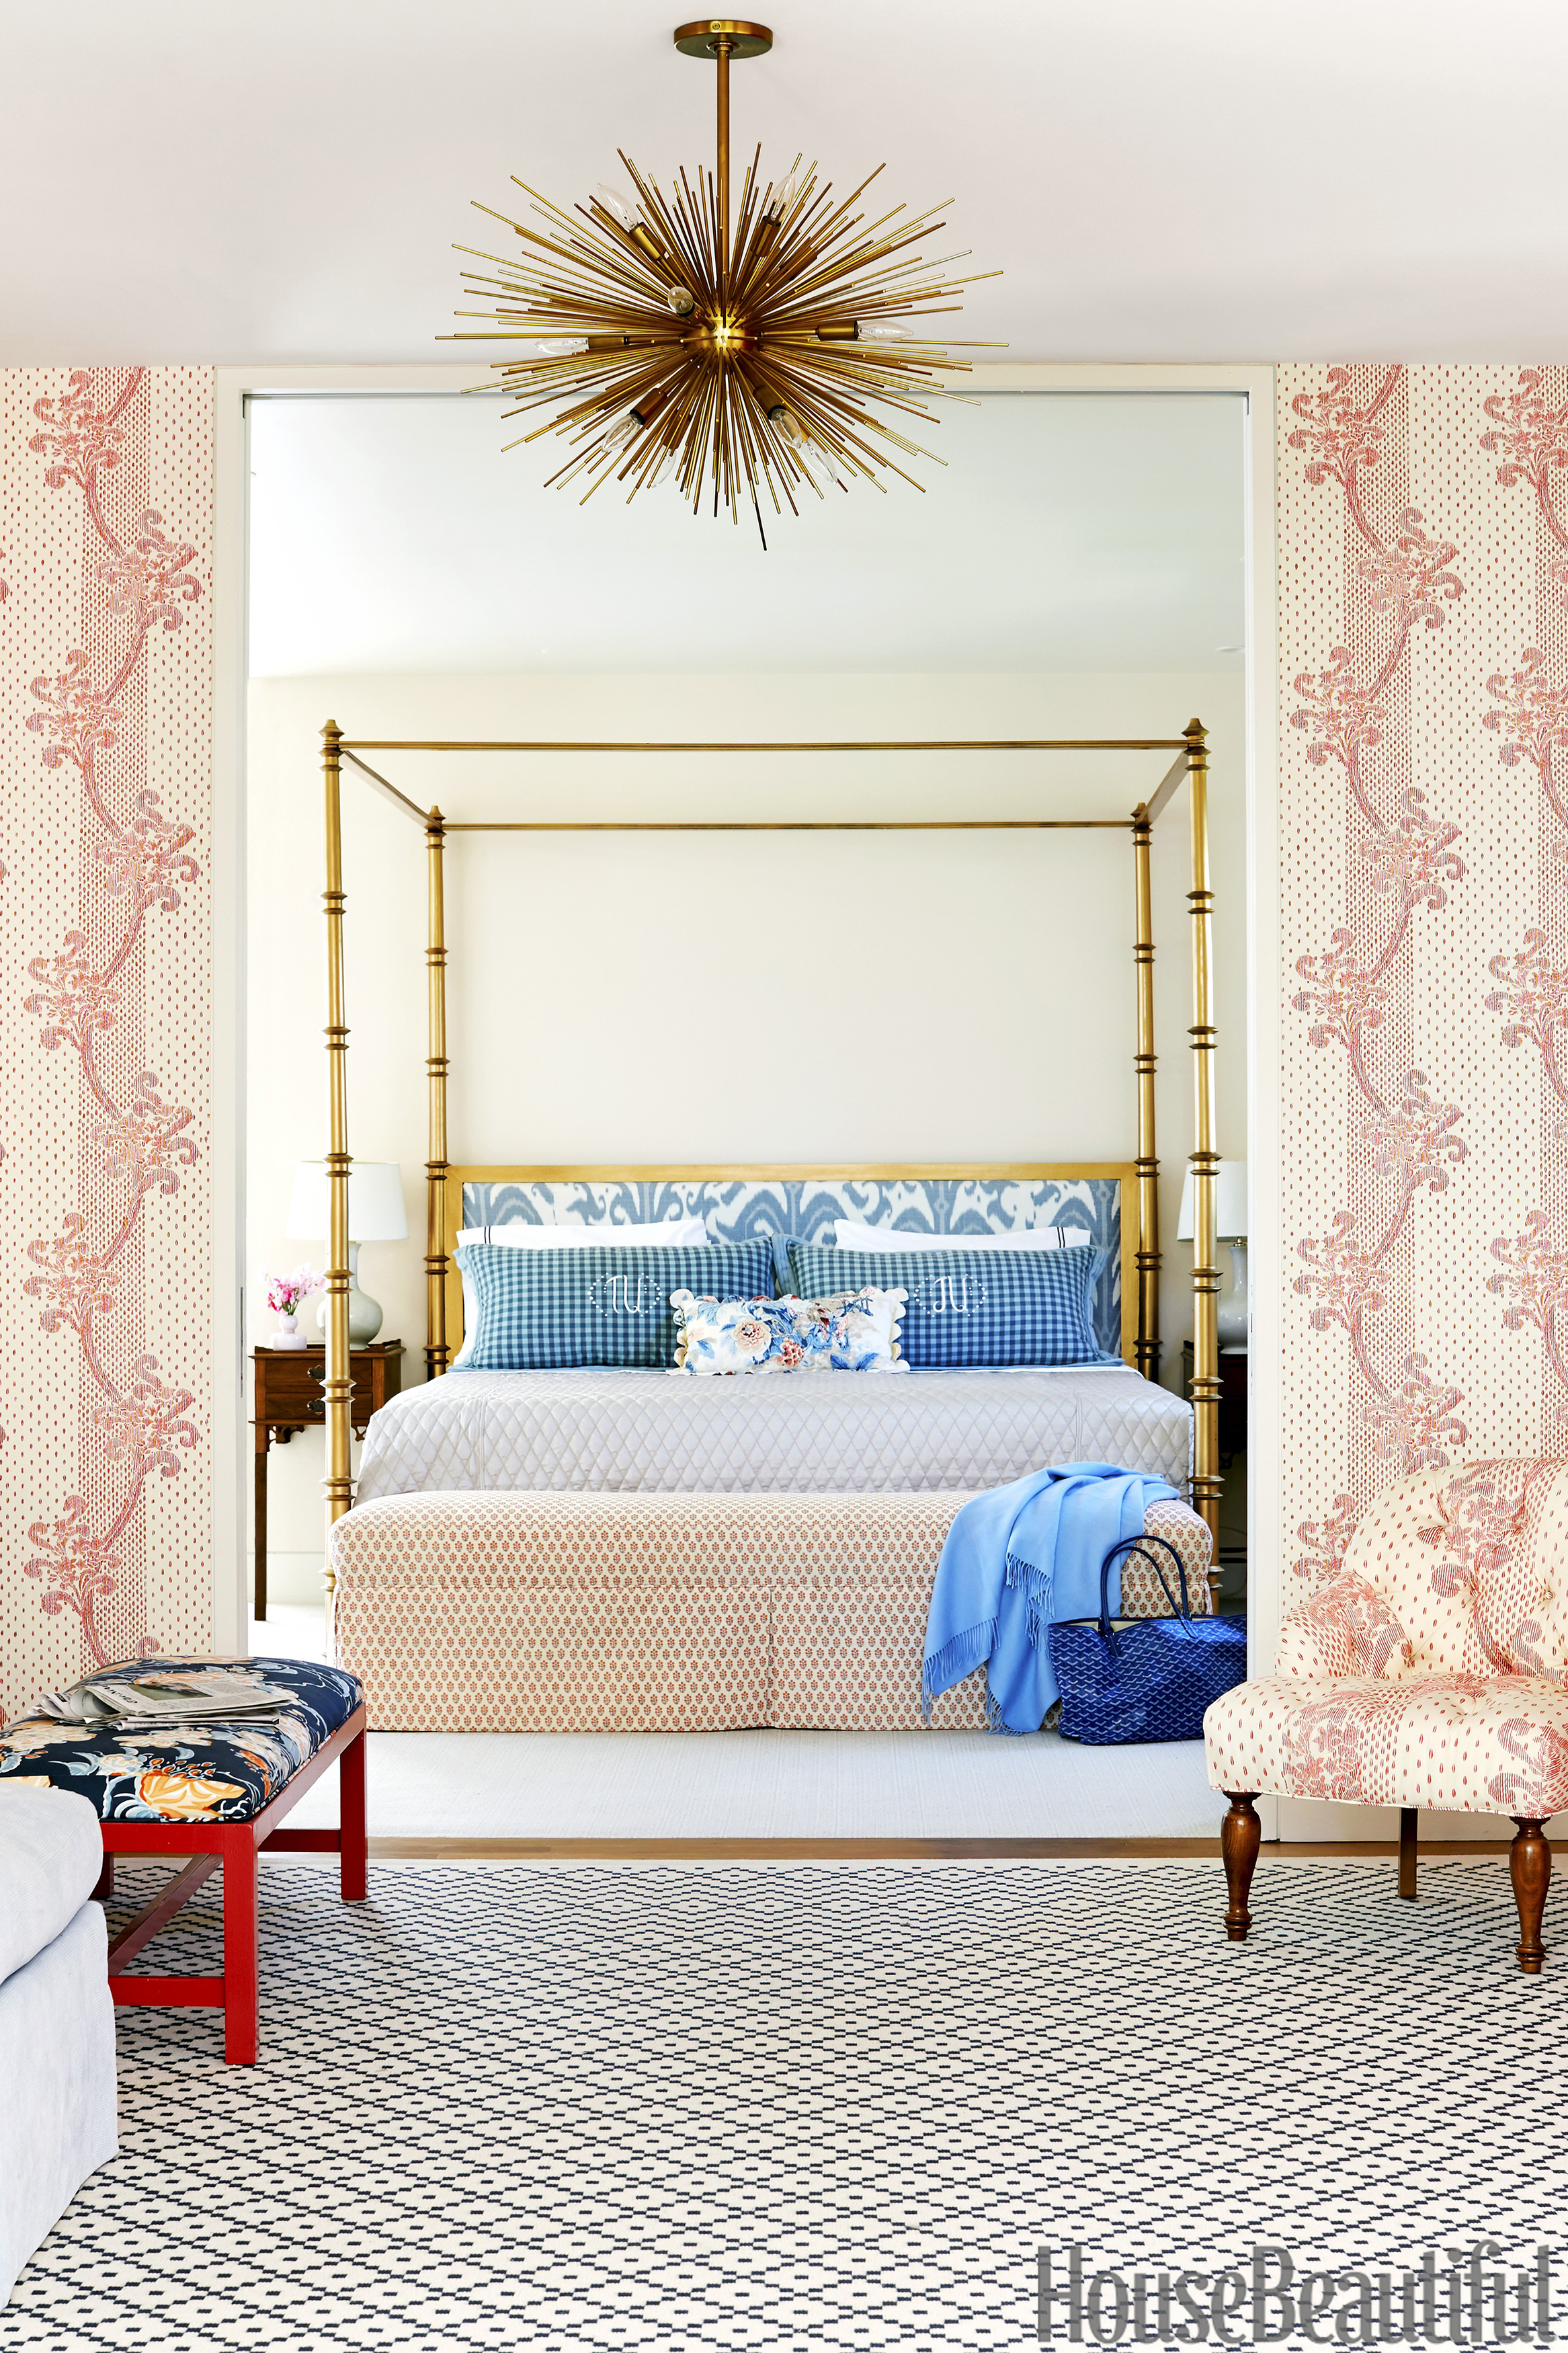 Pictures Of Beautiful Room Designs: 175 Stylish Bedroom Decorating Ideas